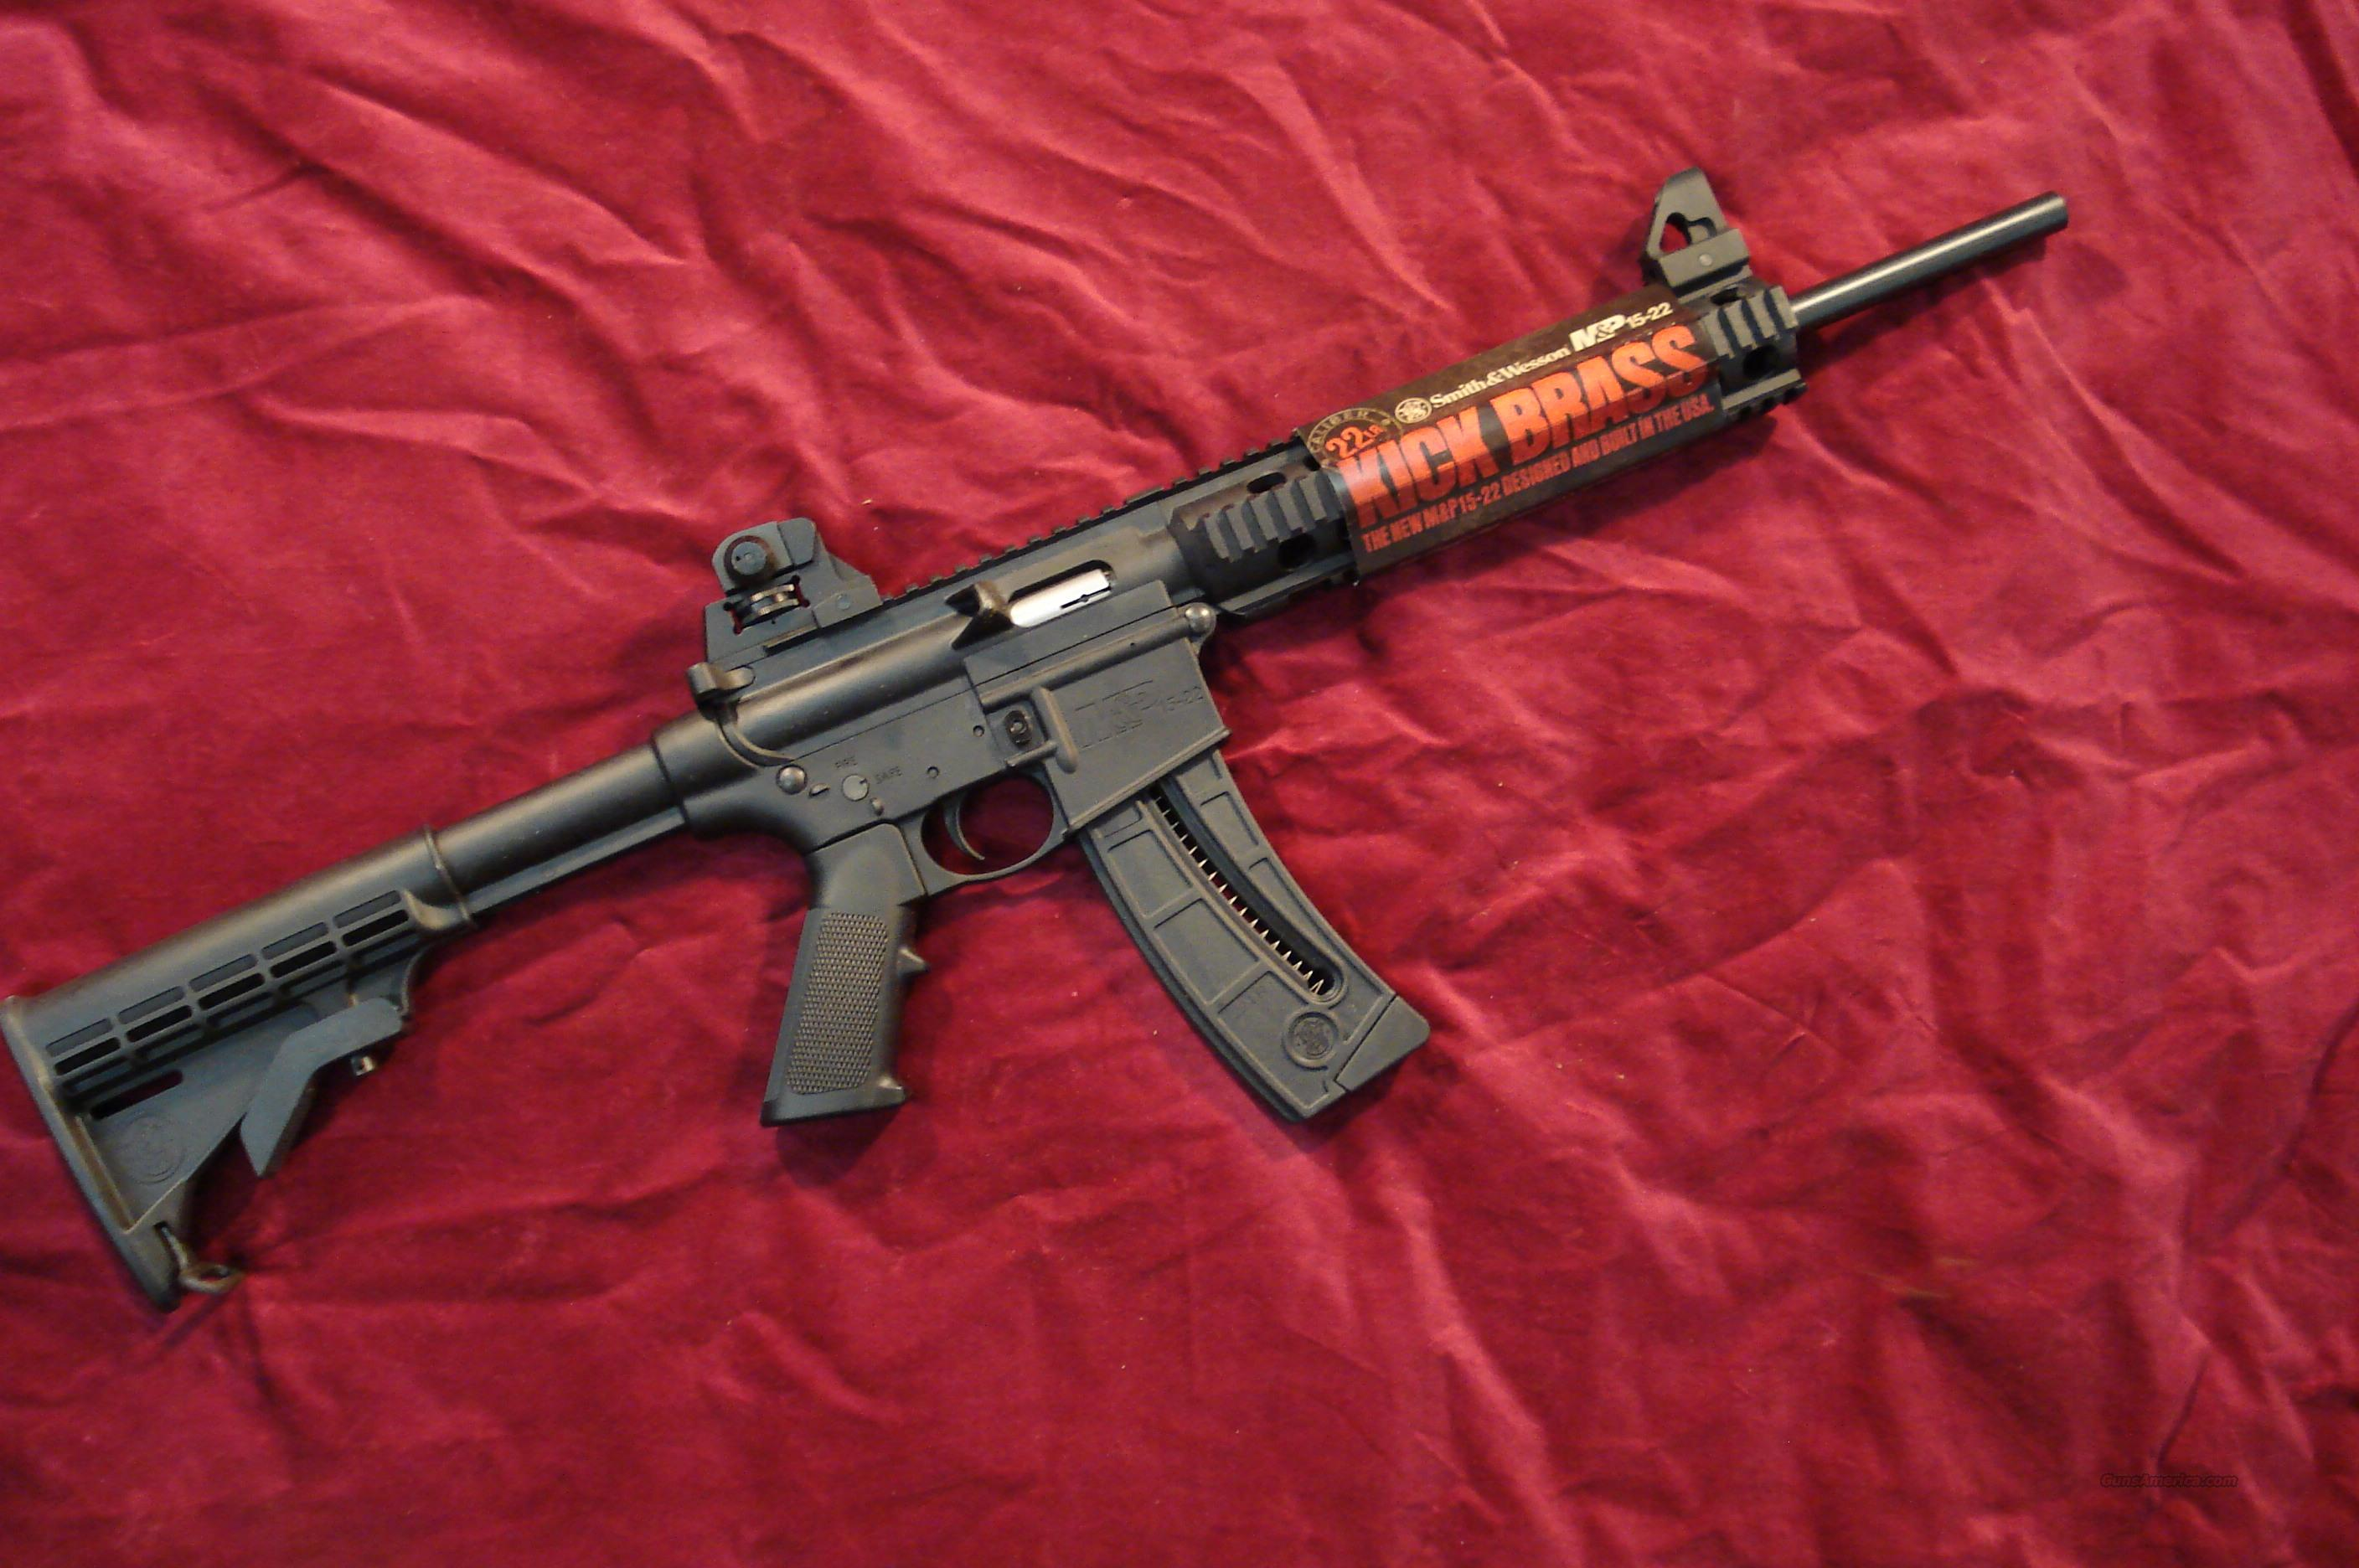 SMITH & WESSON M&P15-22 CALIFORNIA MODEL NEW  Guns > Rifles > Smith & Wesson Rifles > M&P